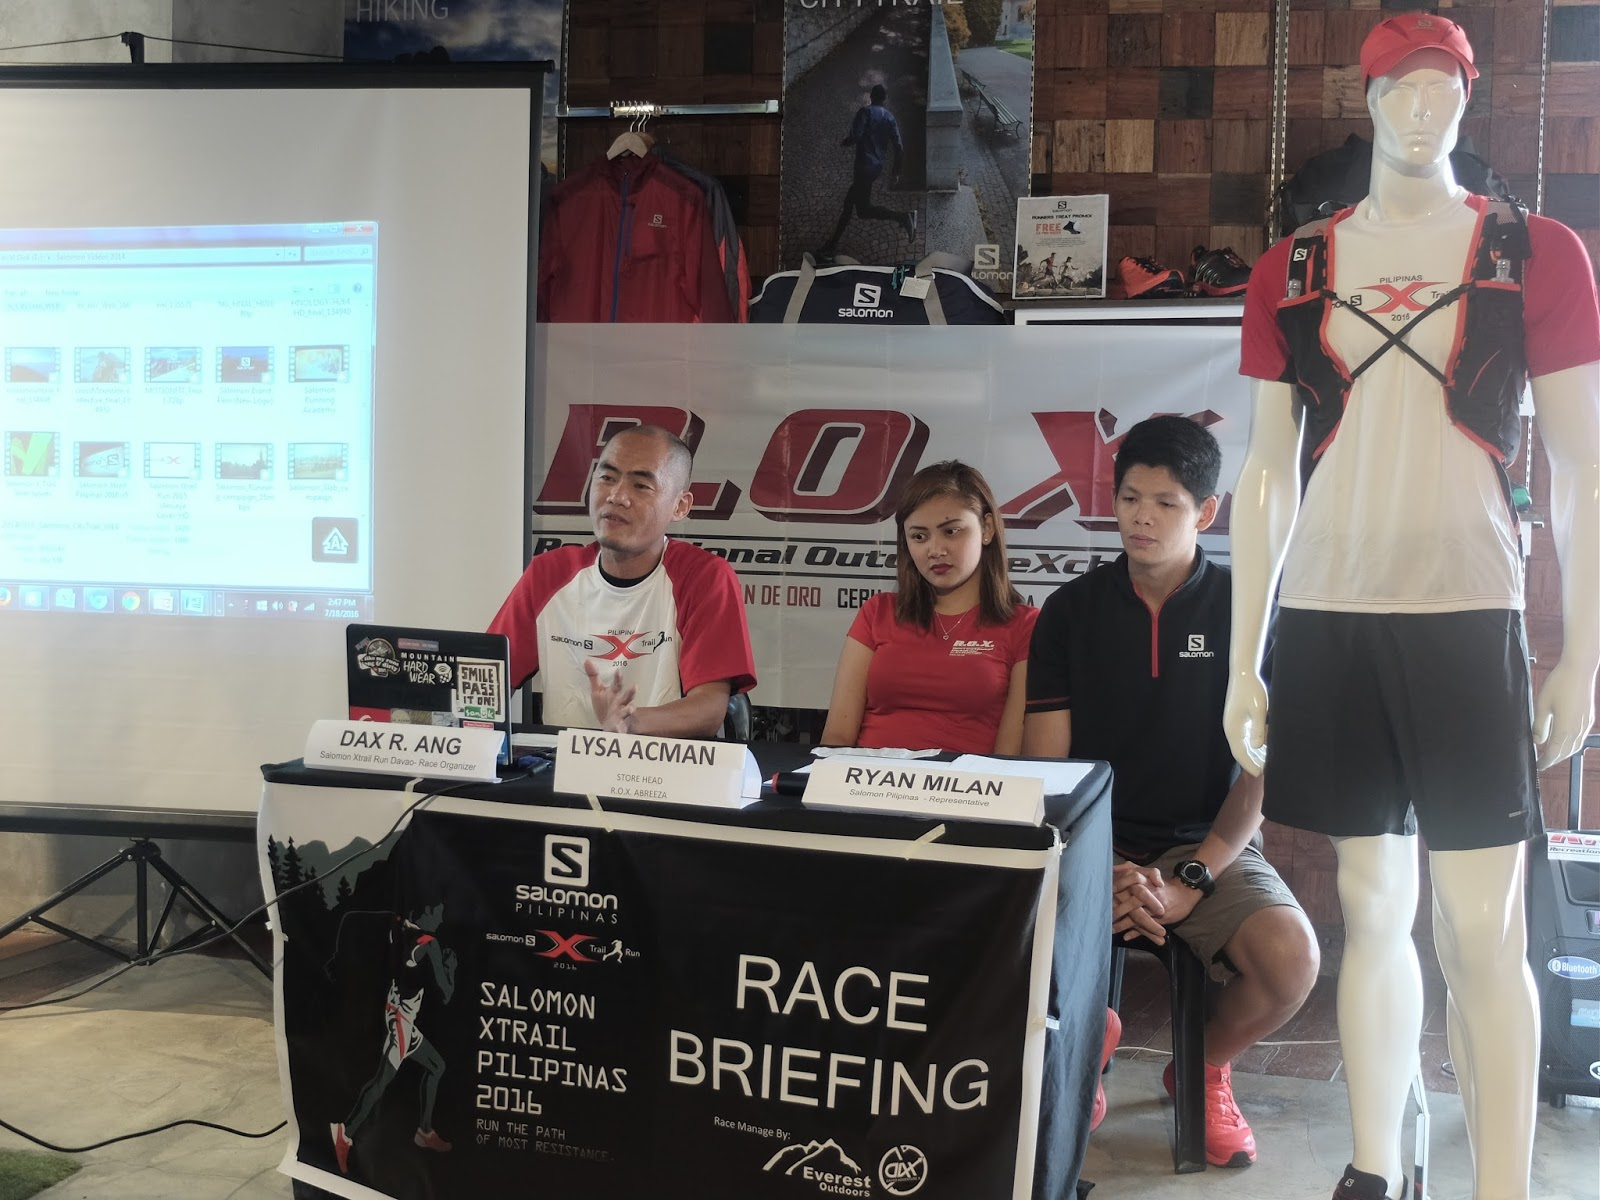 Salomon Xtrail Pilipinas 2016 Davao Race Organizer Mr. Dax Ang, Lysa Acman and Ryan Milan